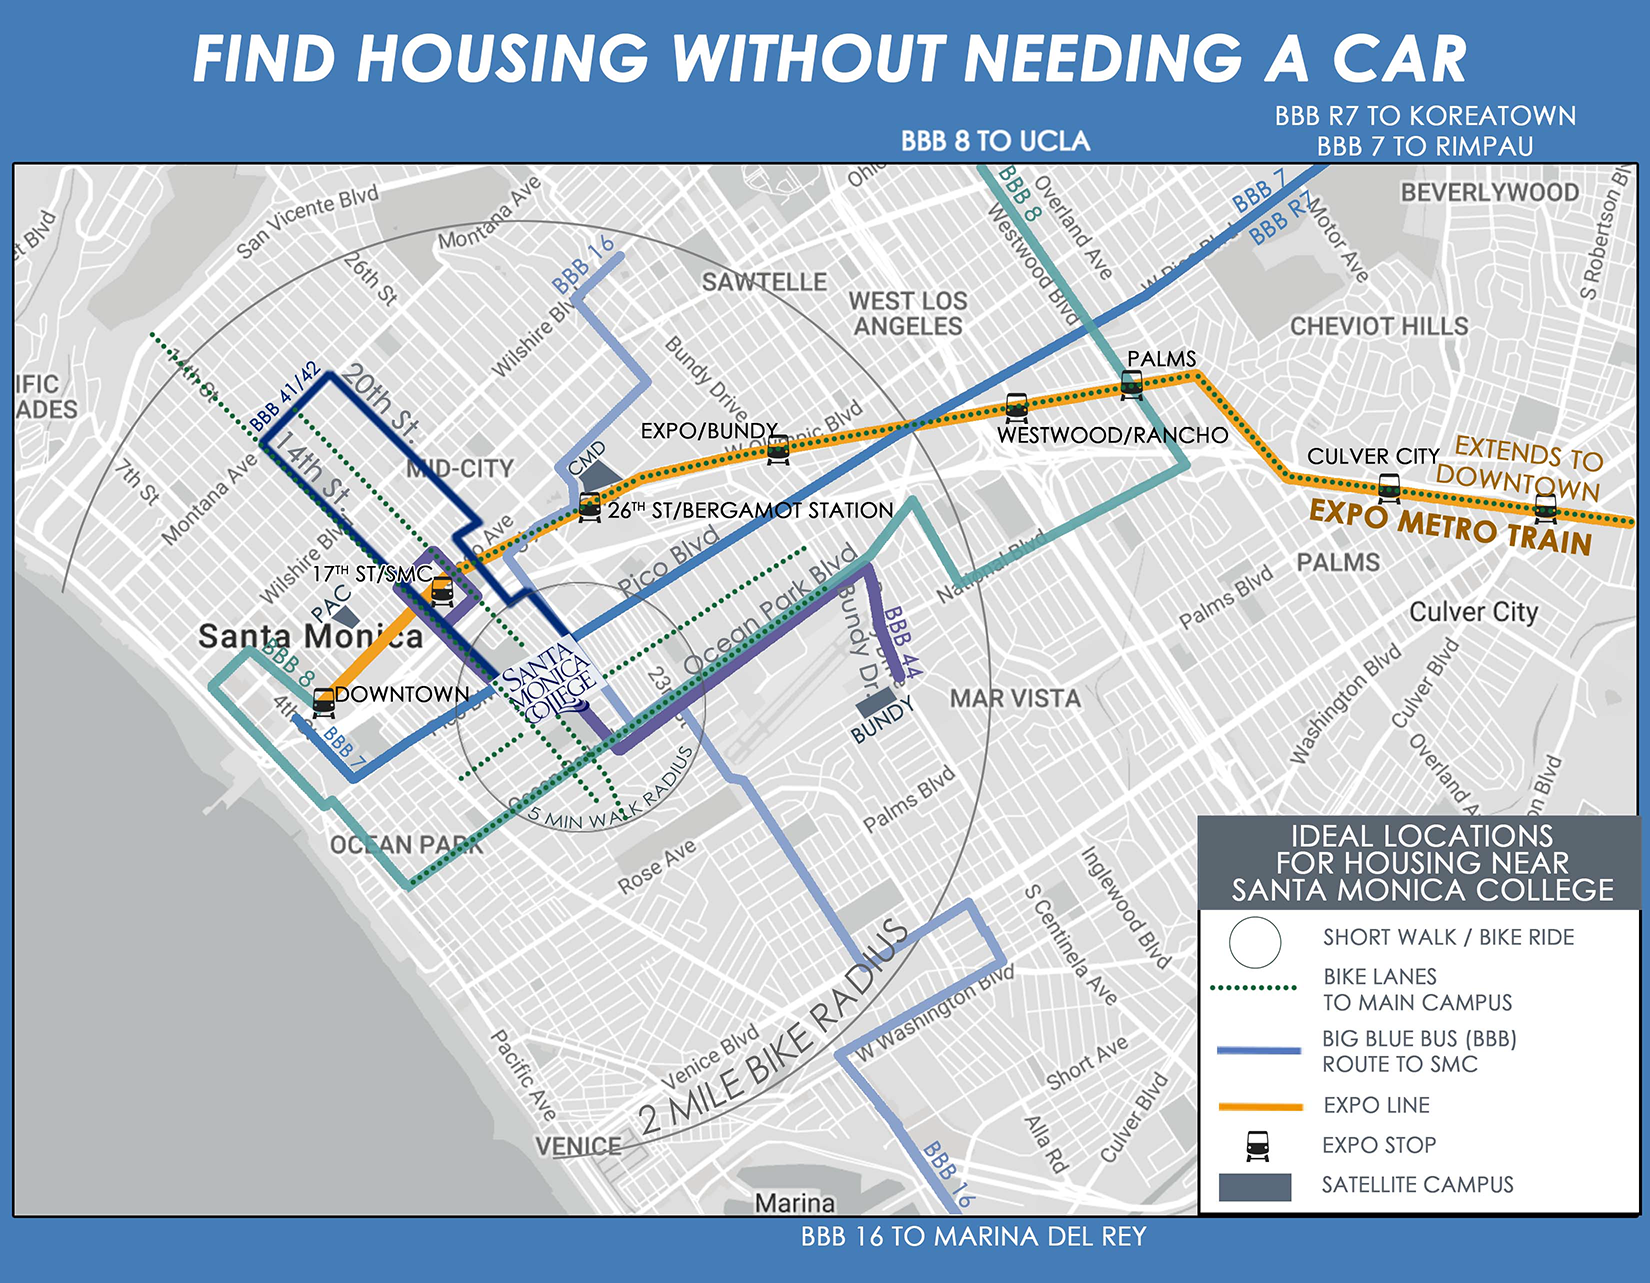 Housing Search Radius - Finding Housing without Needing a Car